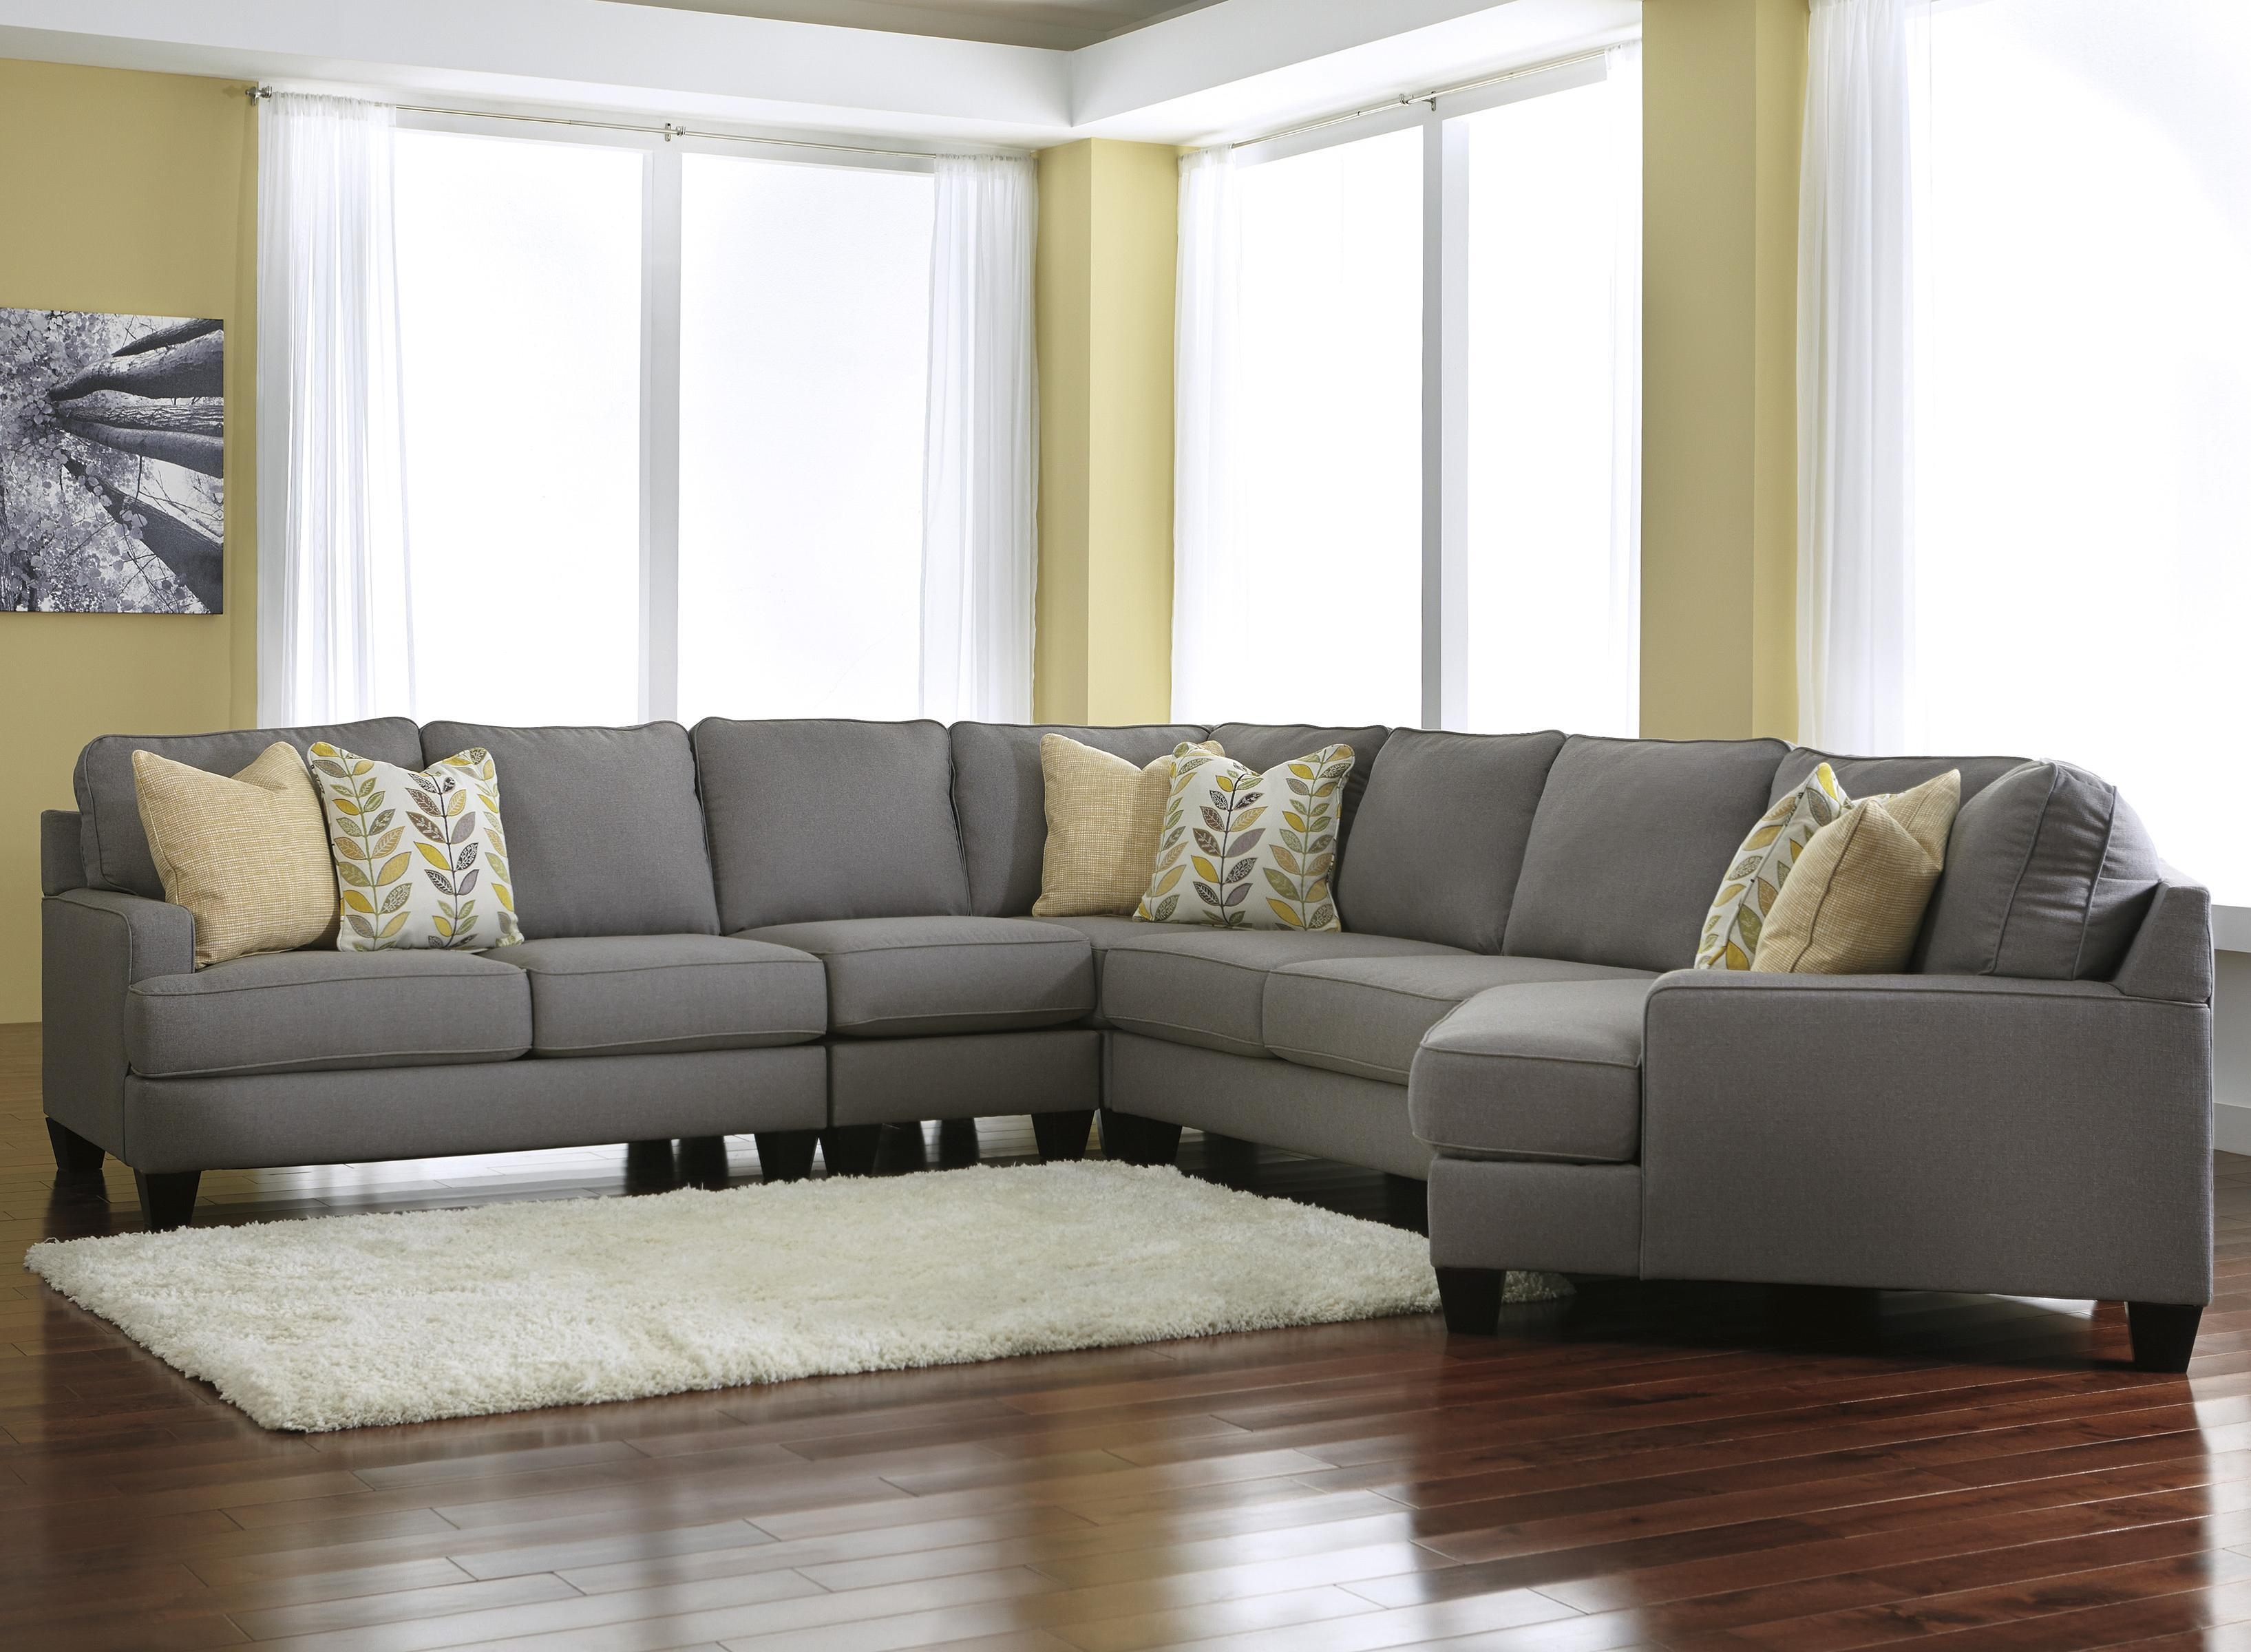 cuddler sectional sofa canada recycling vancouver 15 best ideas